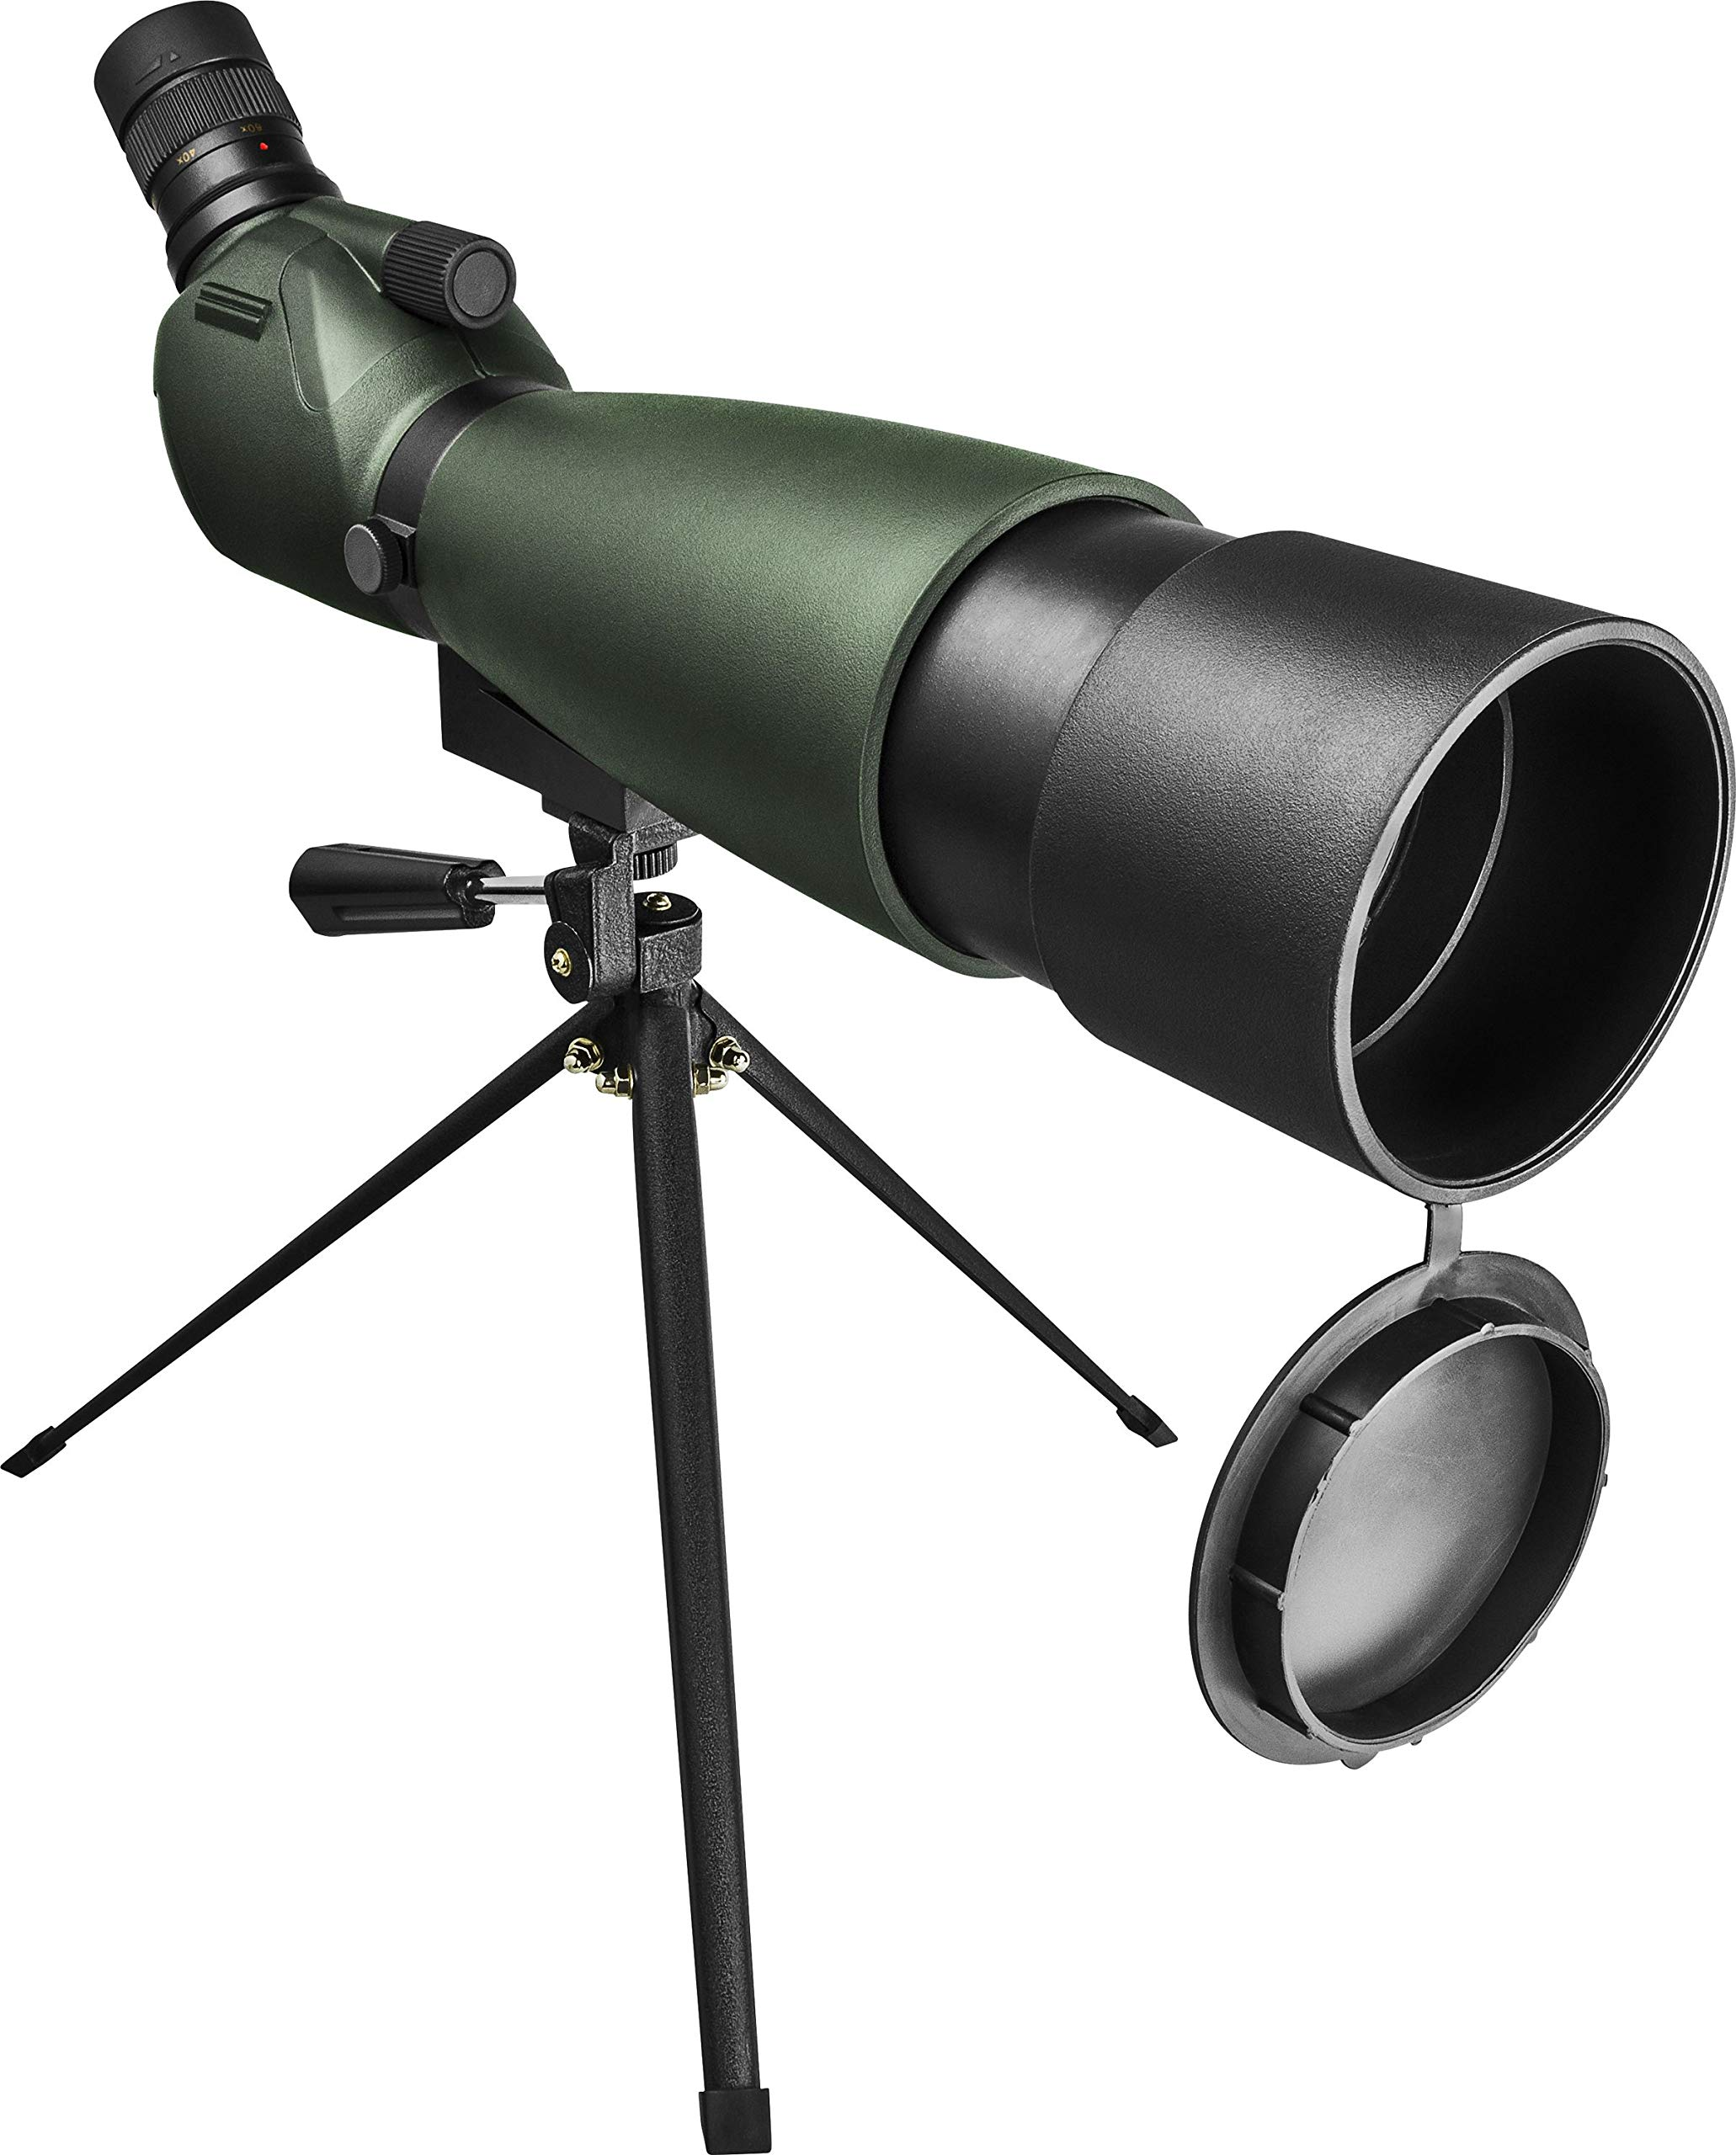 Orion Grandview 20-60x80 Zoom Spotting Scope, Green/Black (51691) by Orion